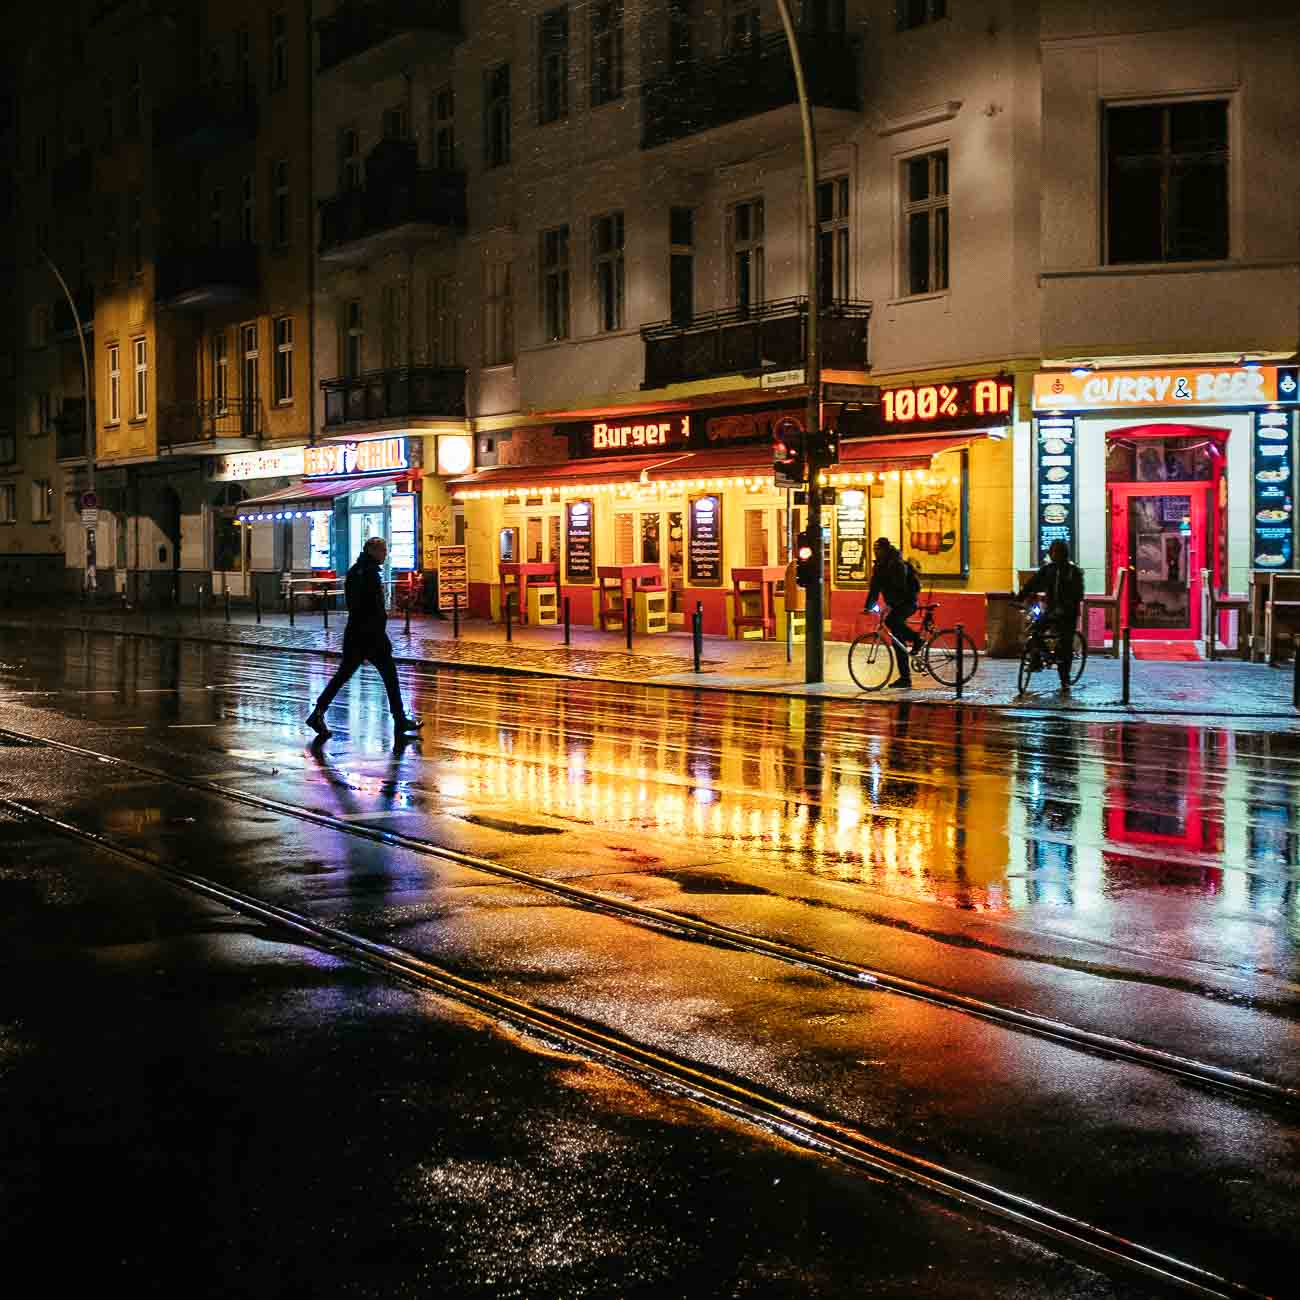 Street Photography Rain in Berlin by Martin U Waltz